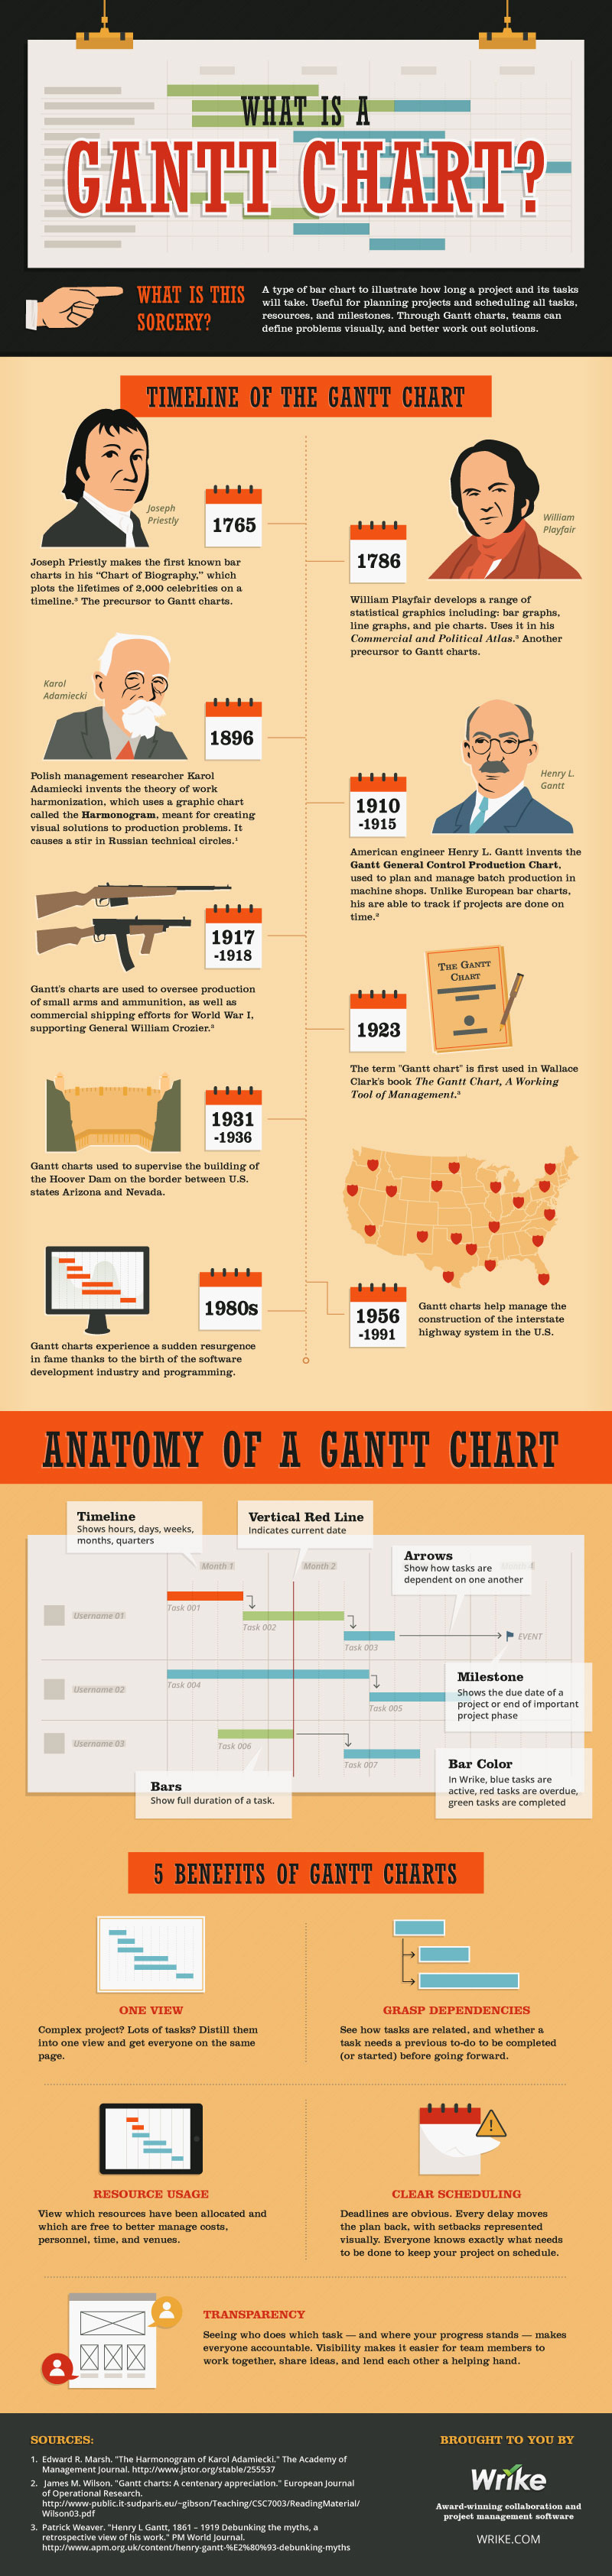 Infographic-What-Is-A-Gantt-Chart-Wrike